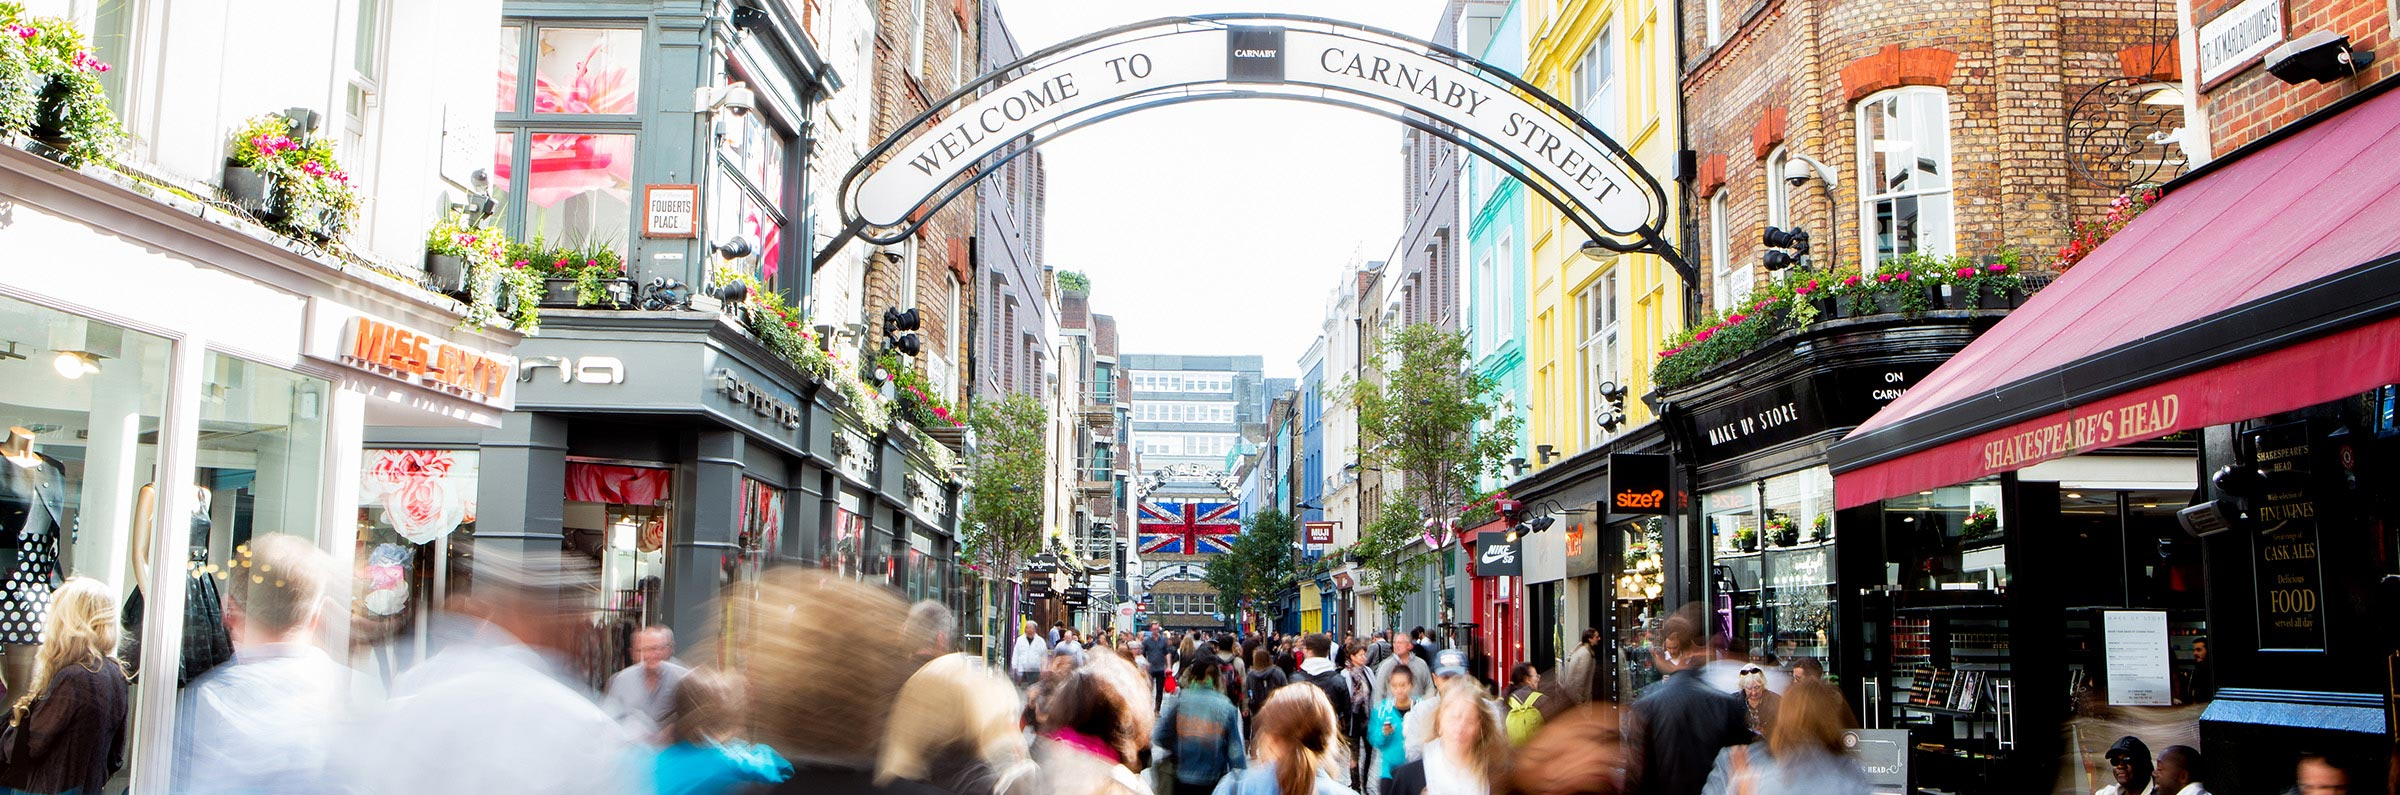 Compras in Londres